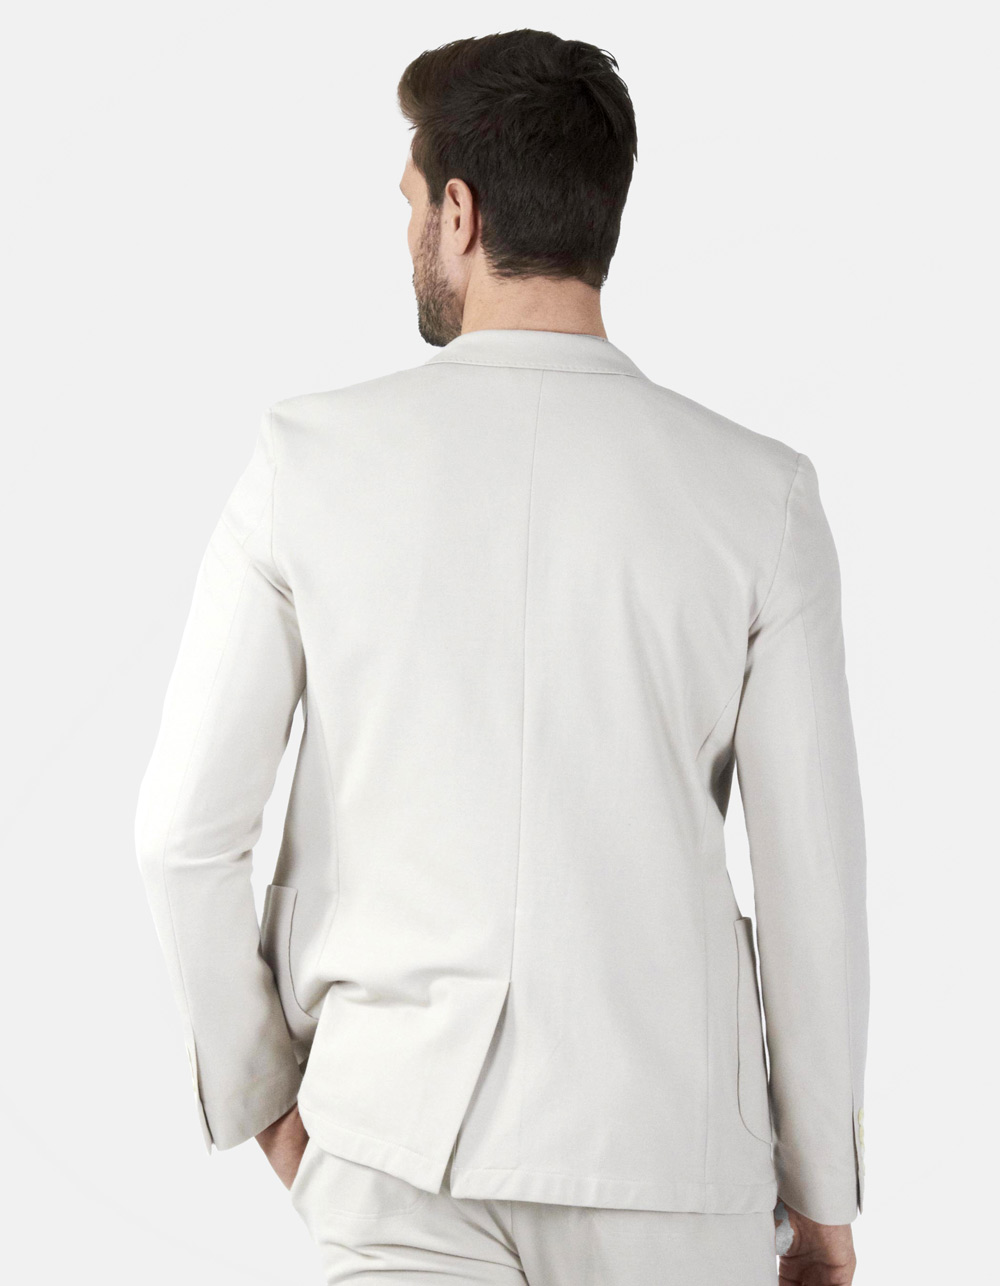 White plain blazer - Backside